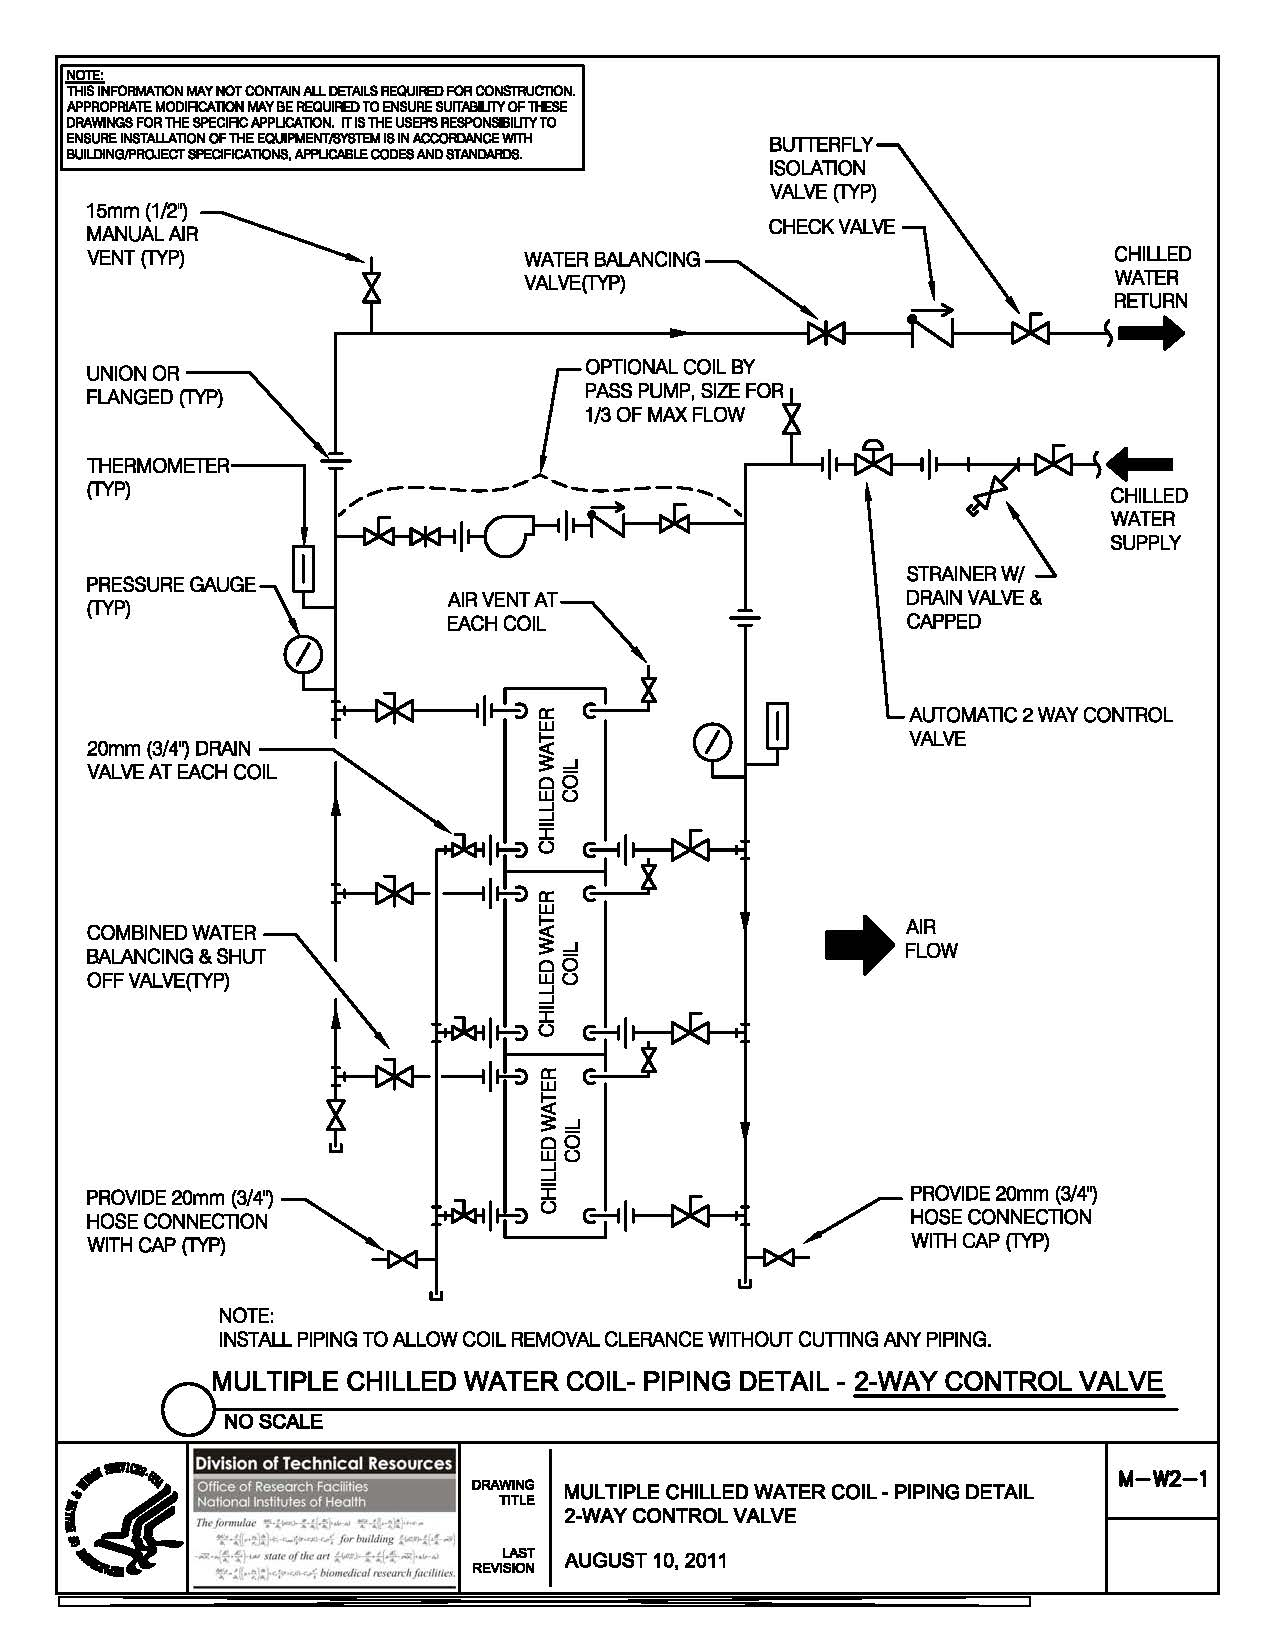 Nih standard cad details thumbnail of m w2 1multiple chilled water coil piping detail buycottarizona Image collections